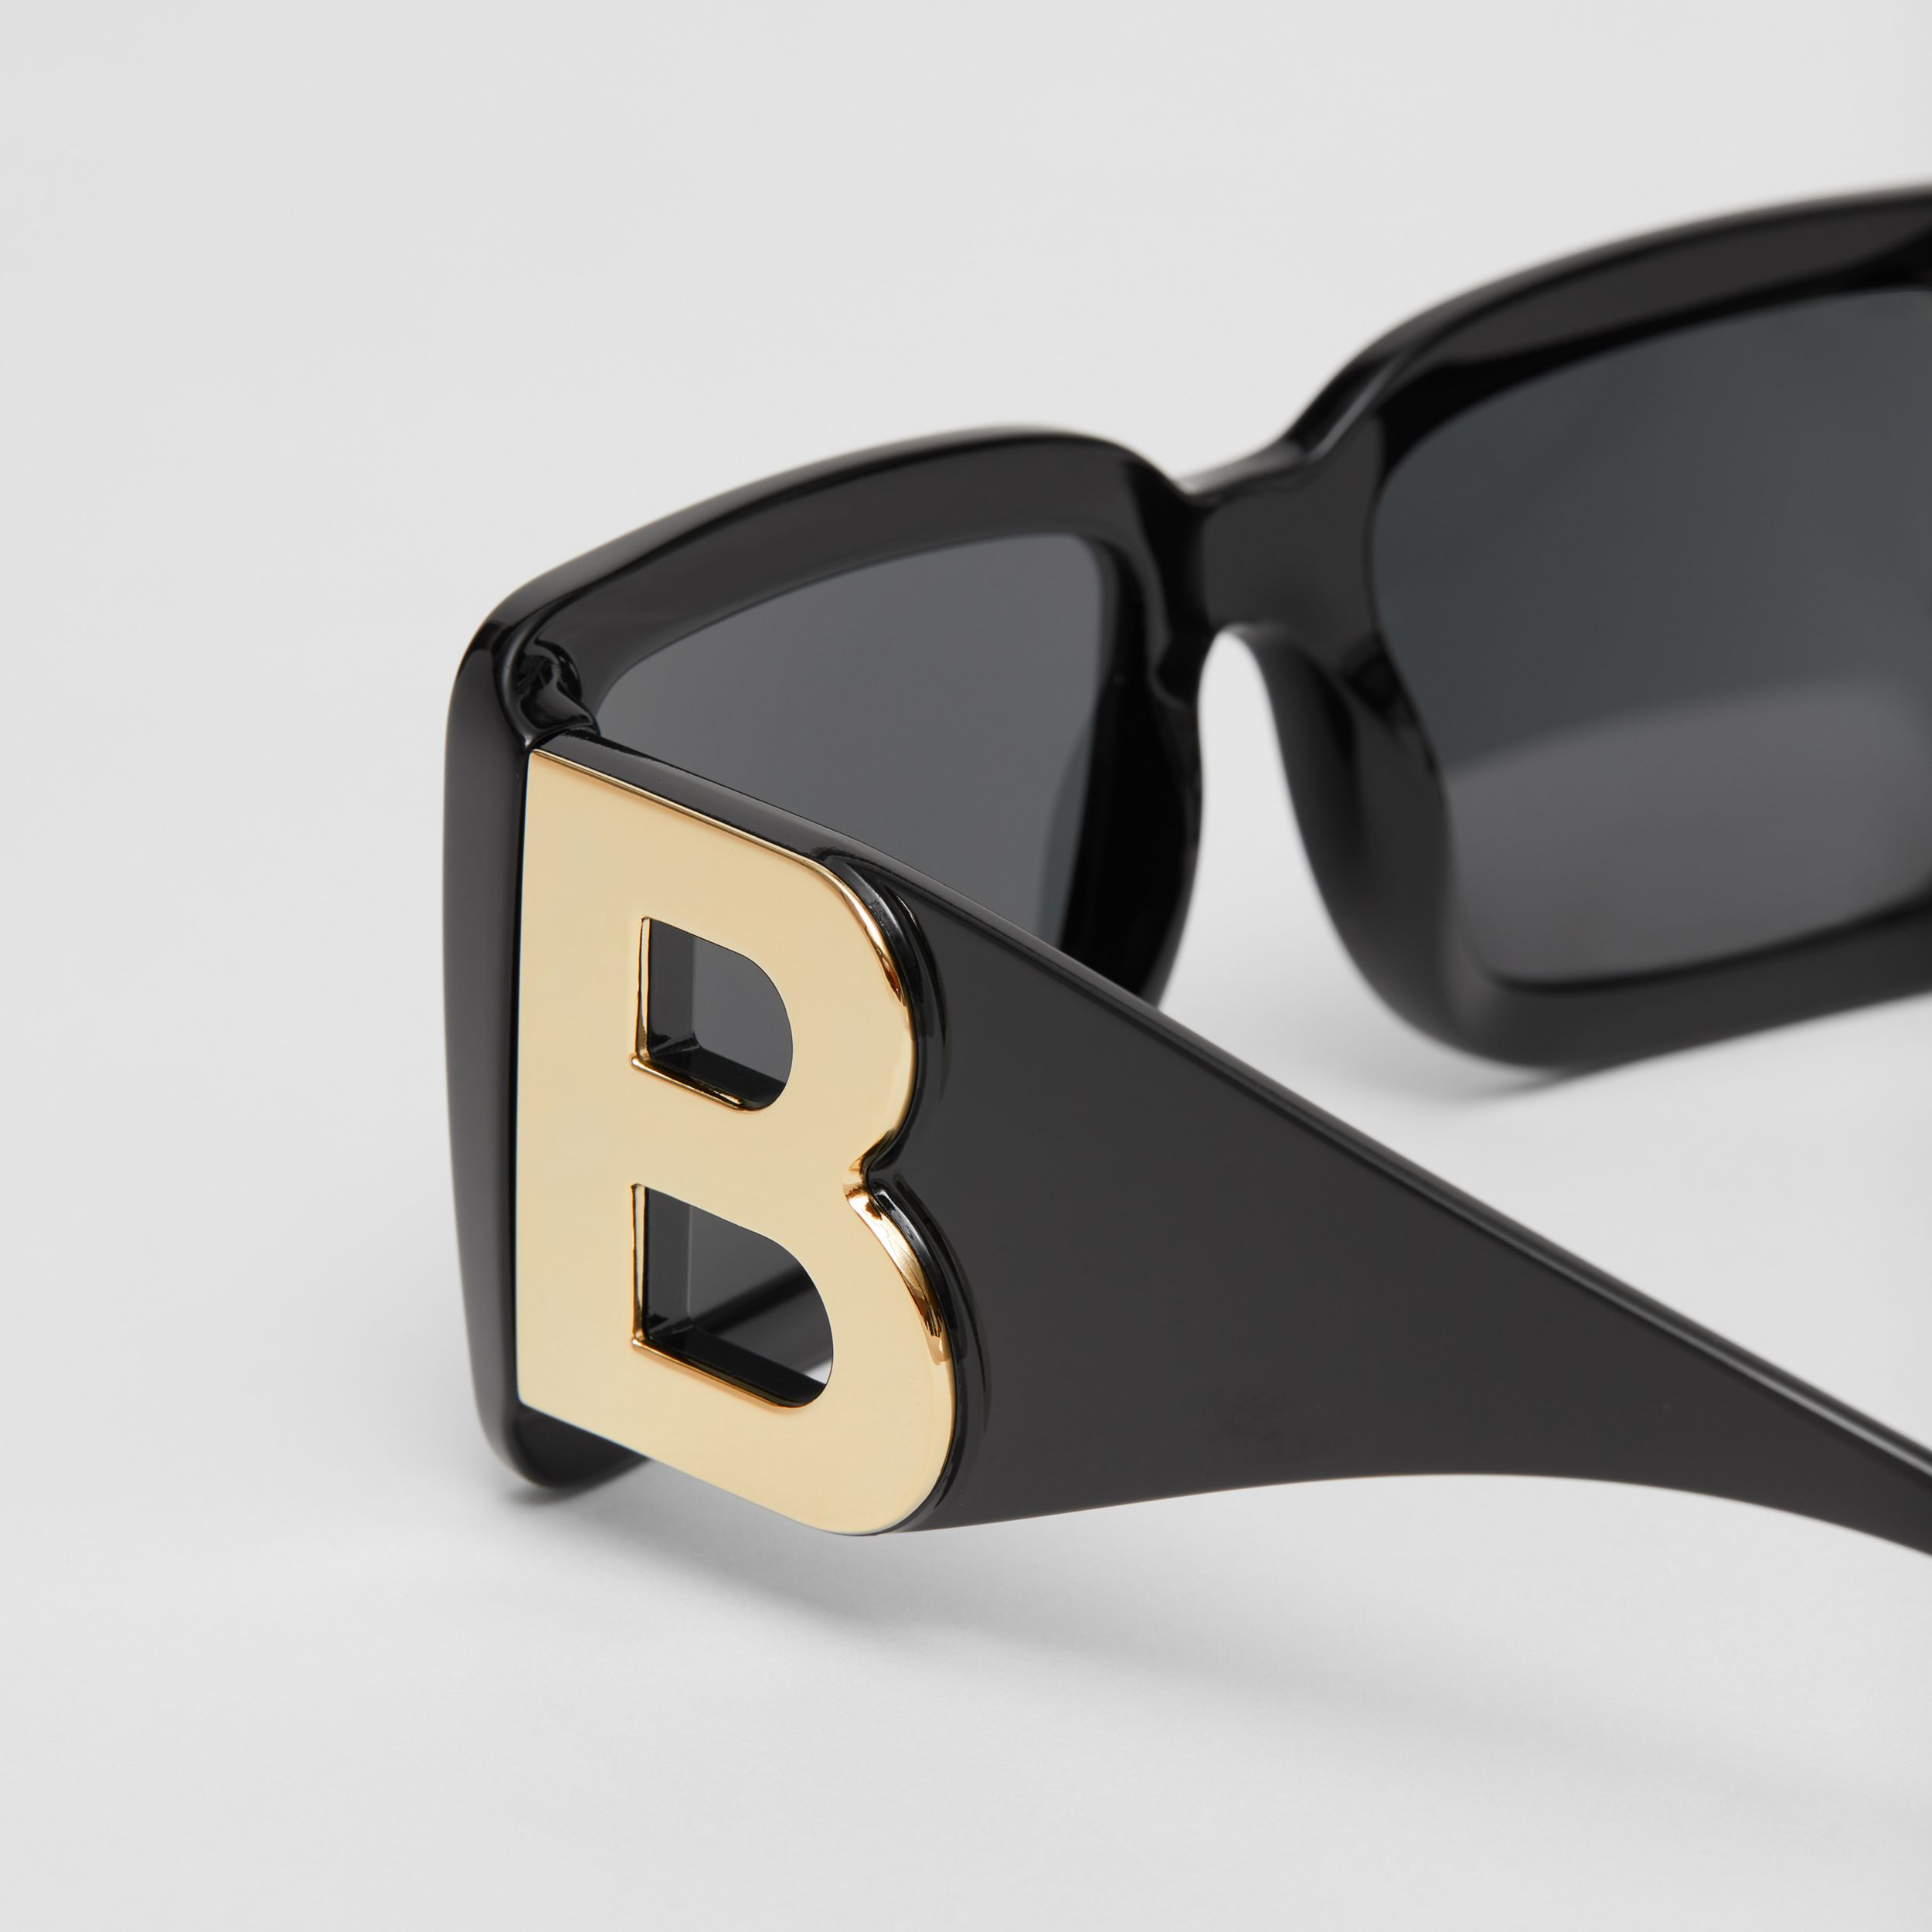 B Motif Square Frame Sunglasses in Black | Burberry United States - 2